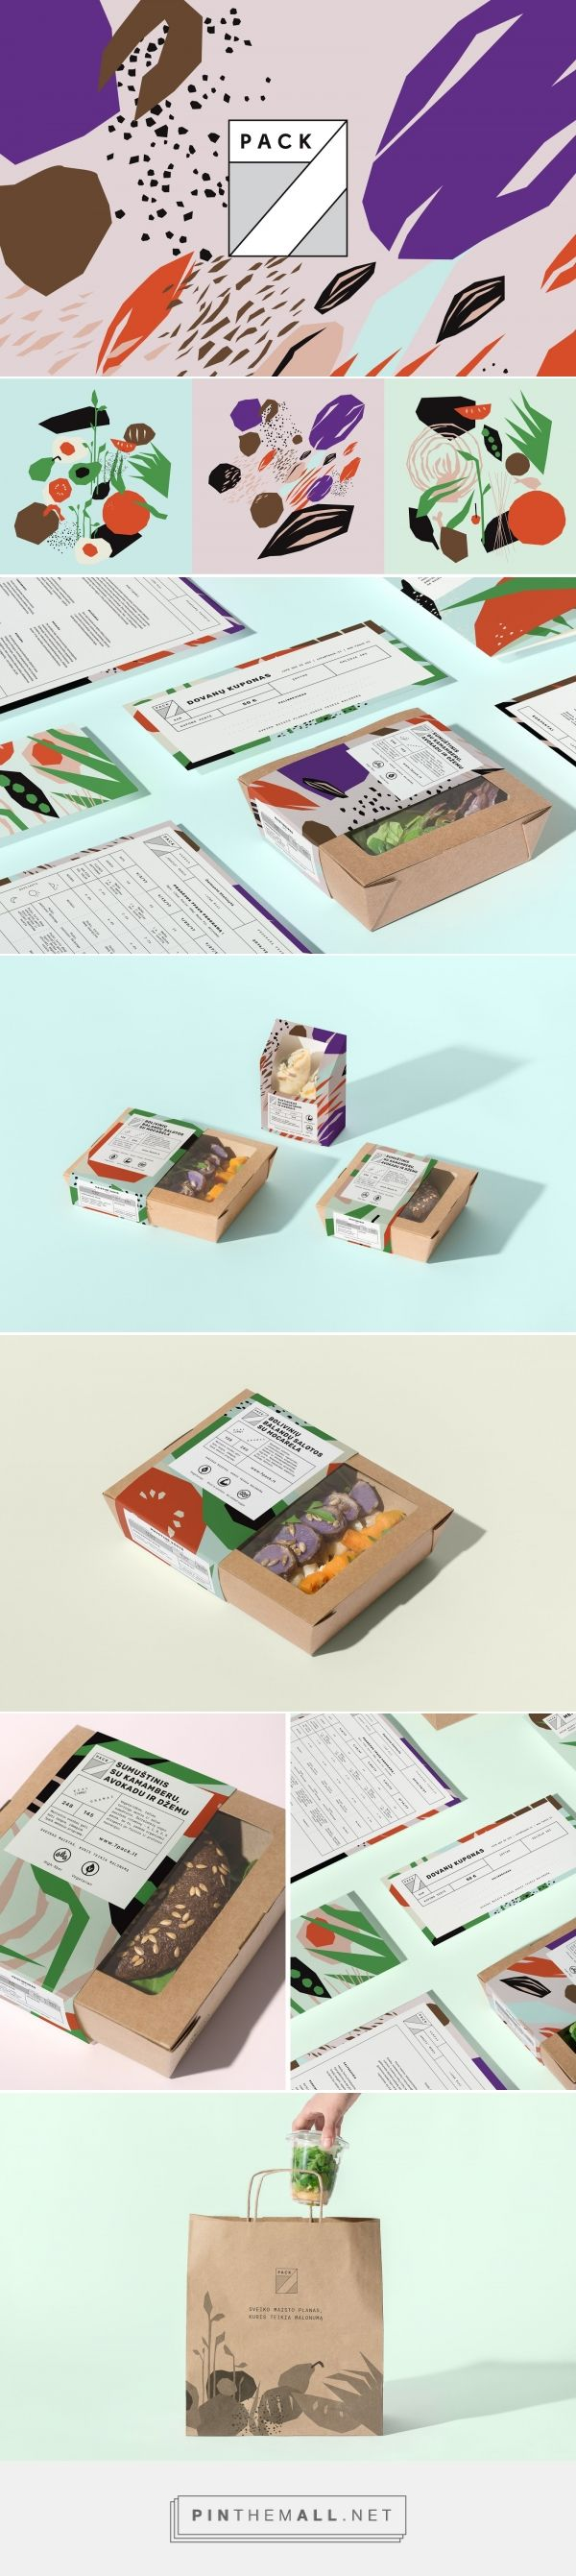 7pack food packaging design by Godspeed Branding - http://www.packagingoftheworld.com/2018/02/7pack.html